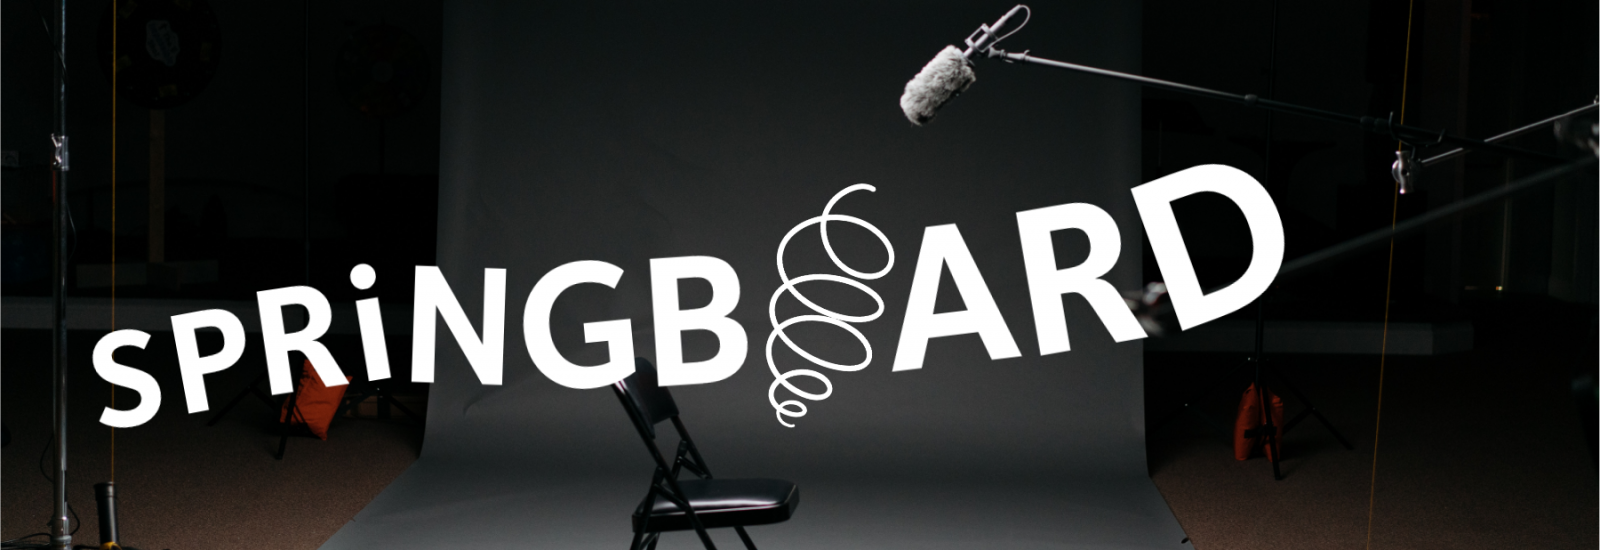 Springboard logo over photo with an empty chair and microphone in a recording studio